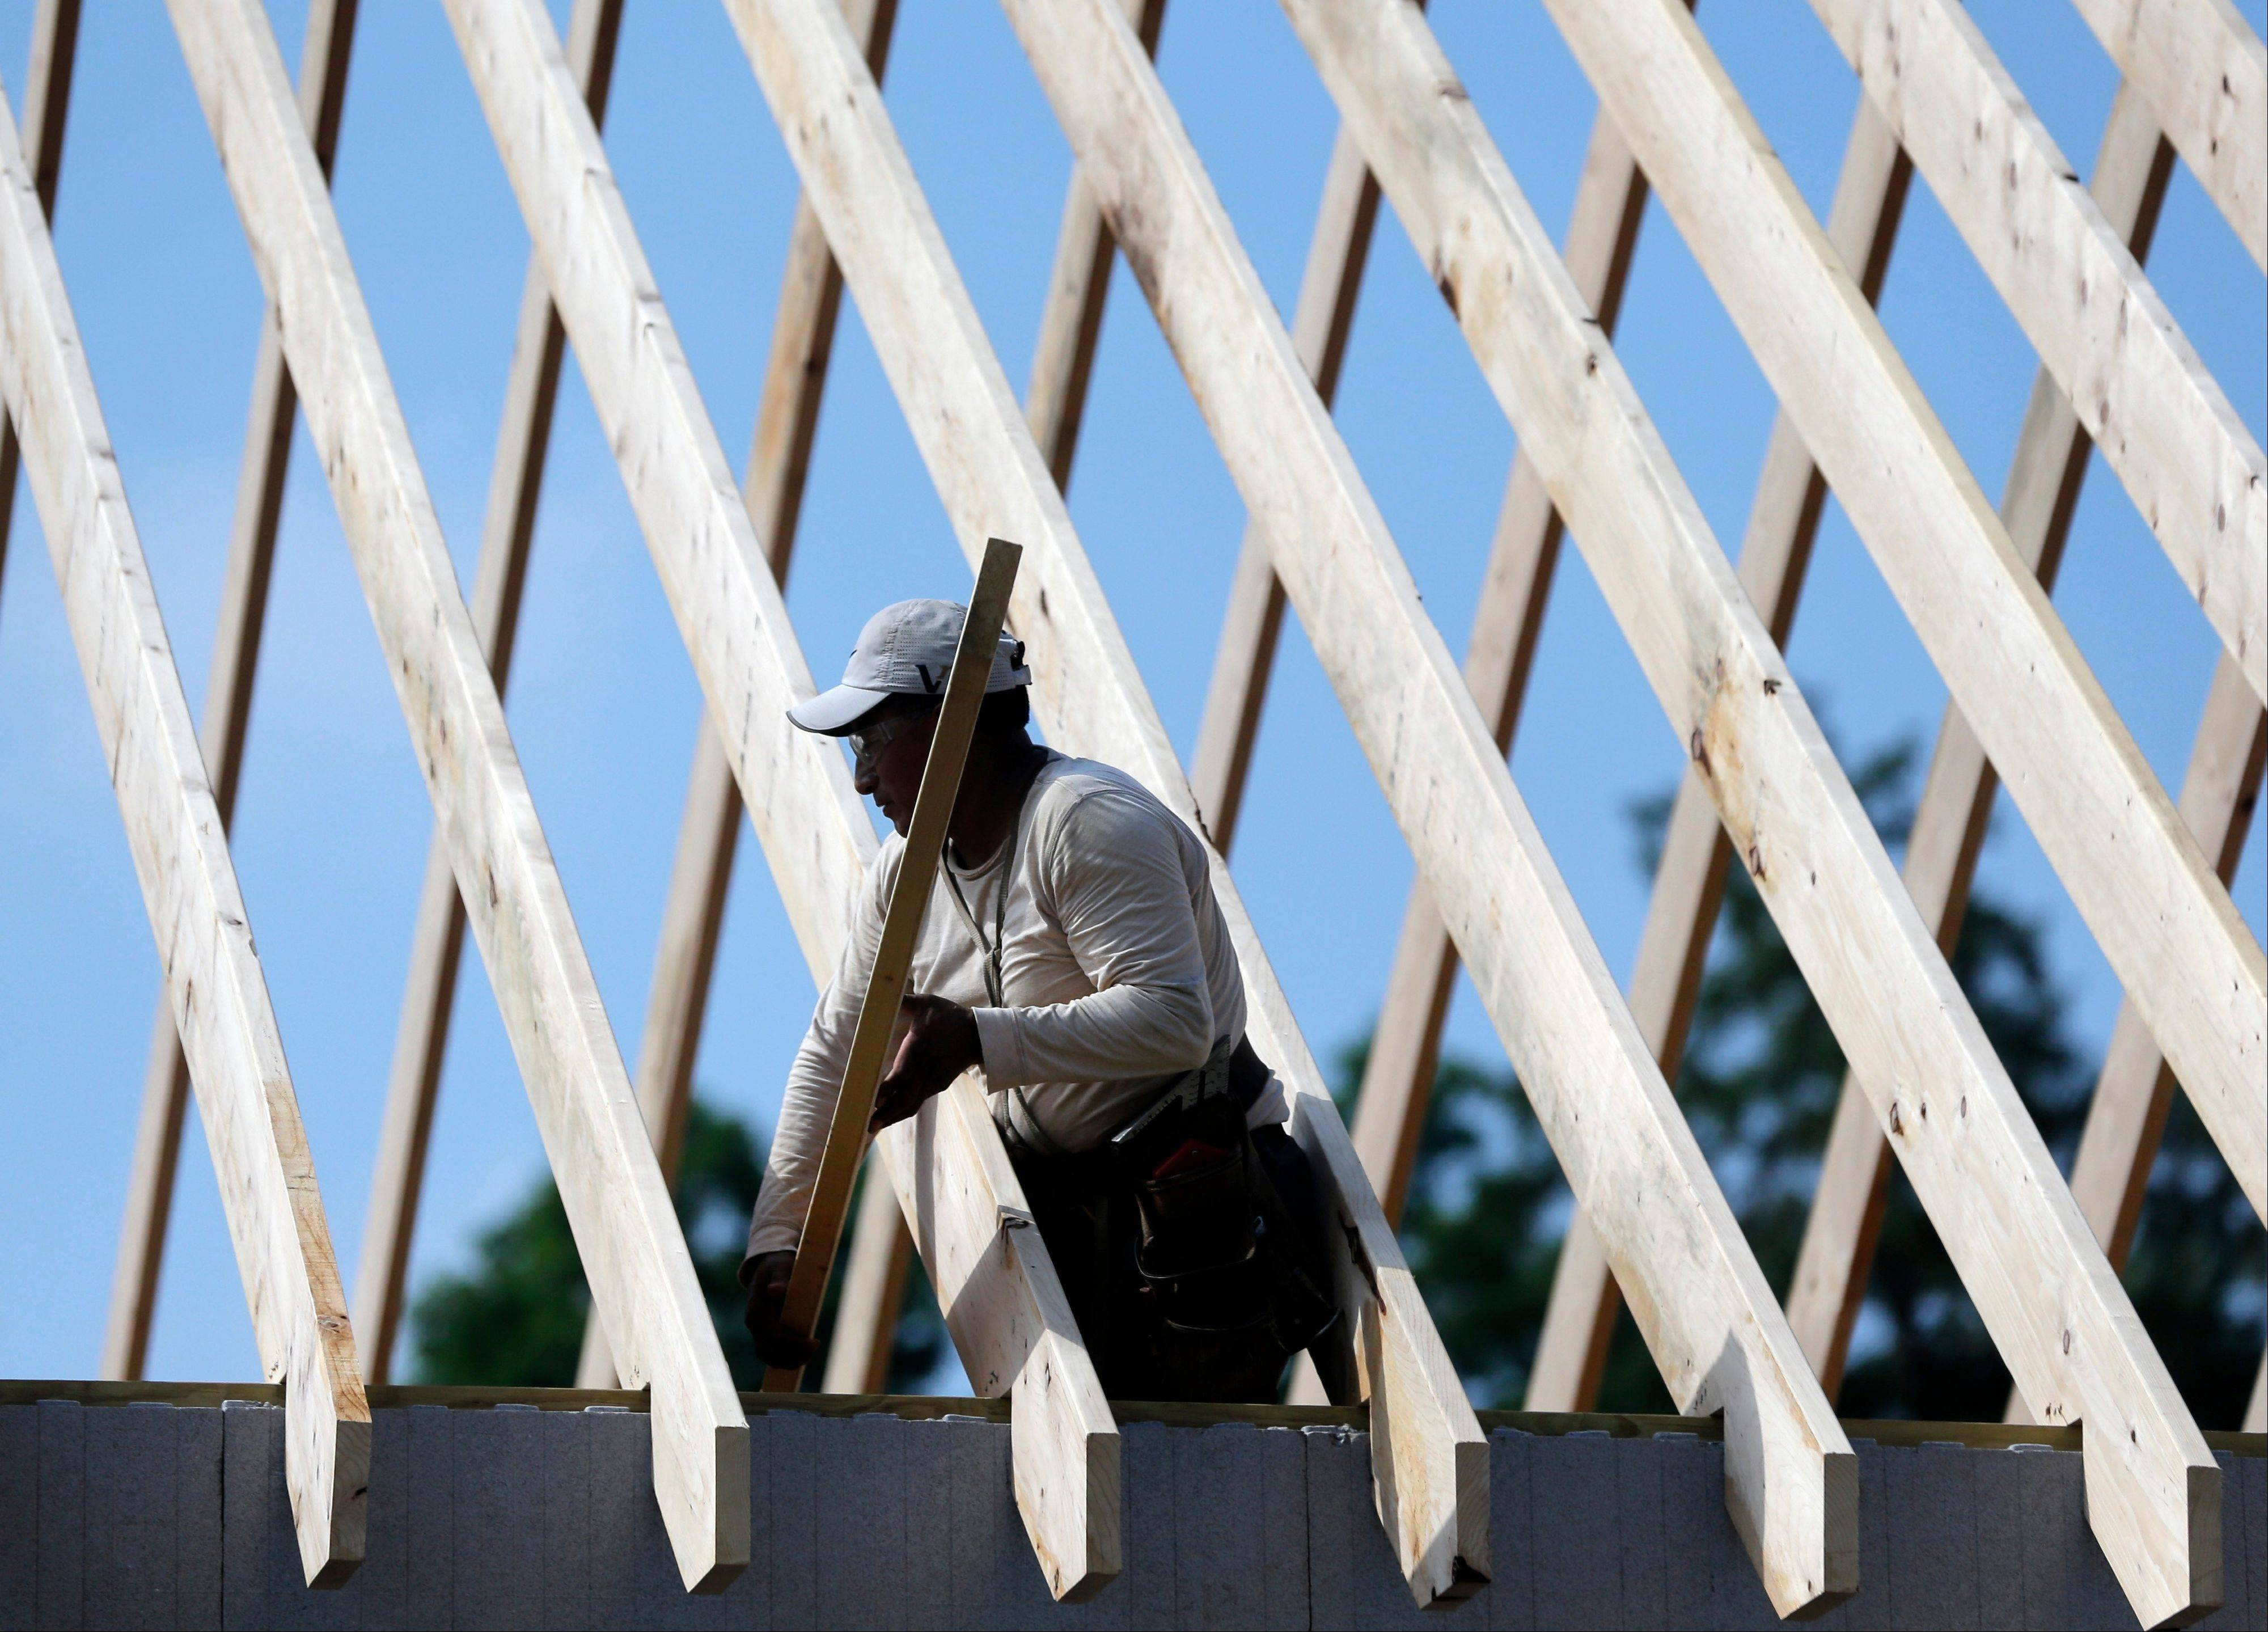 A worker works on the roof of a zero net energy home at The Preserve at Mountain Vista in New Paltz, N.Y.